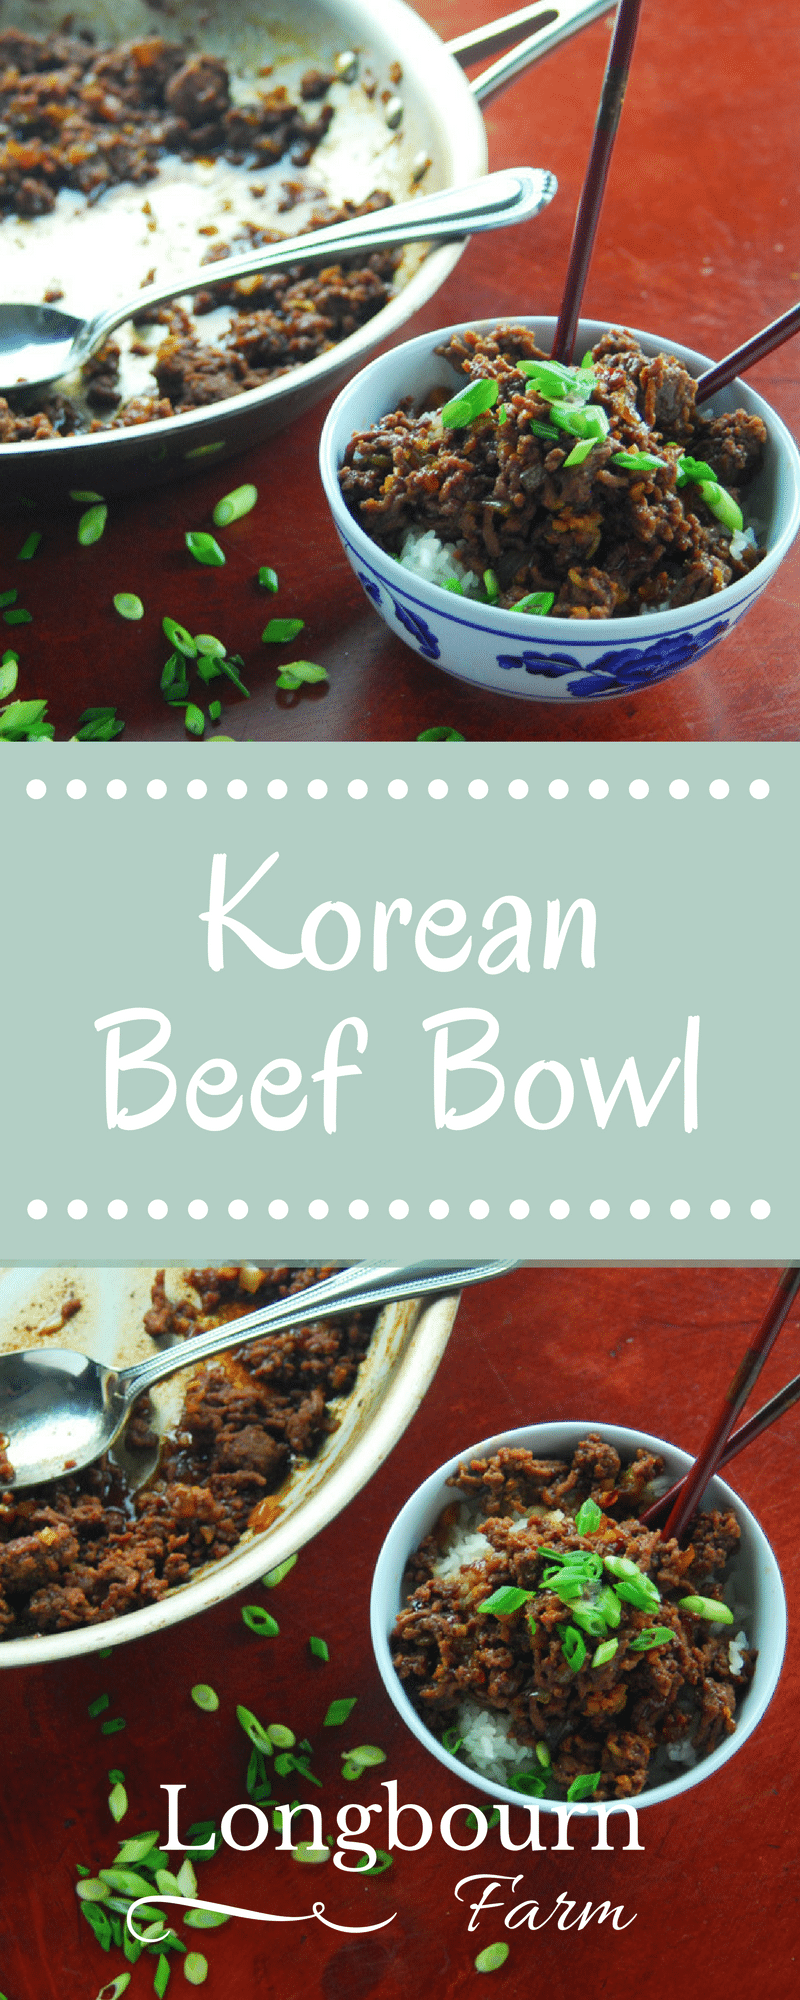 This Korean Beef Bowl recipe is a quick meal you can have on the table in 30 minutes. Sweet, spicy, and totally delicious. Your family will love it, try it!